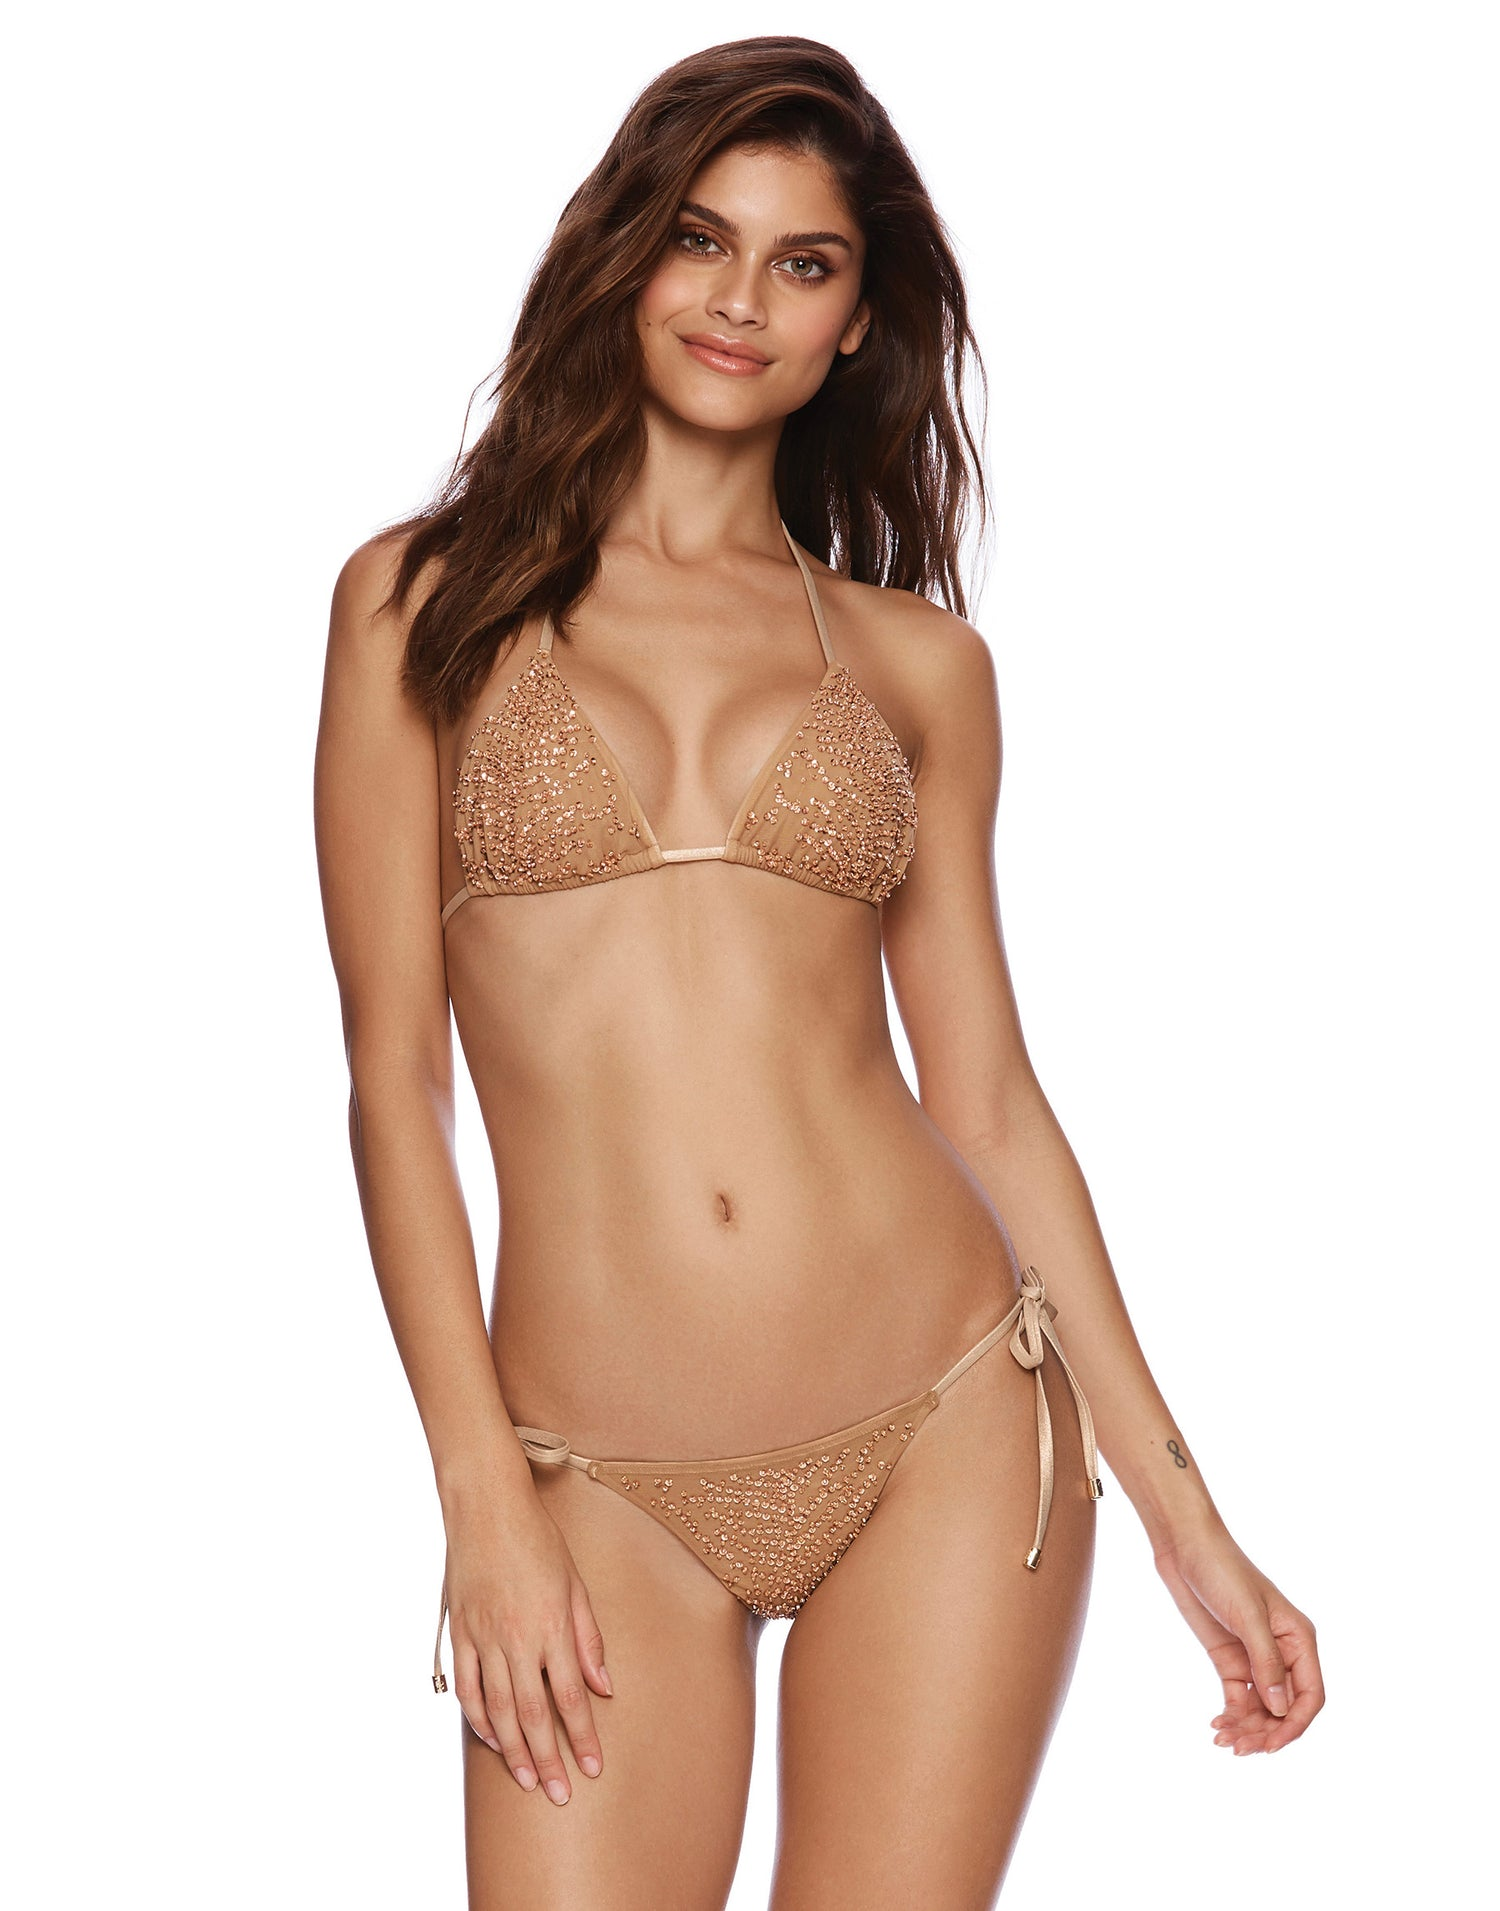 Nala Tie Side Skimpy Bikini Bottom in Rose Gold with Beads and Sequins - front view